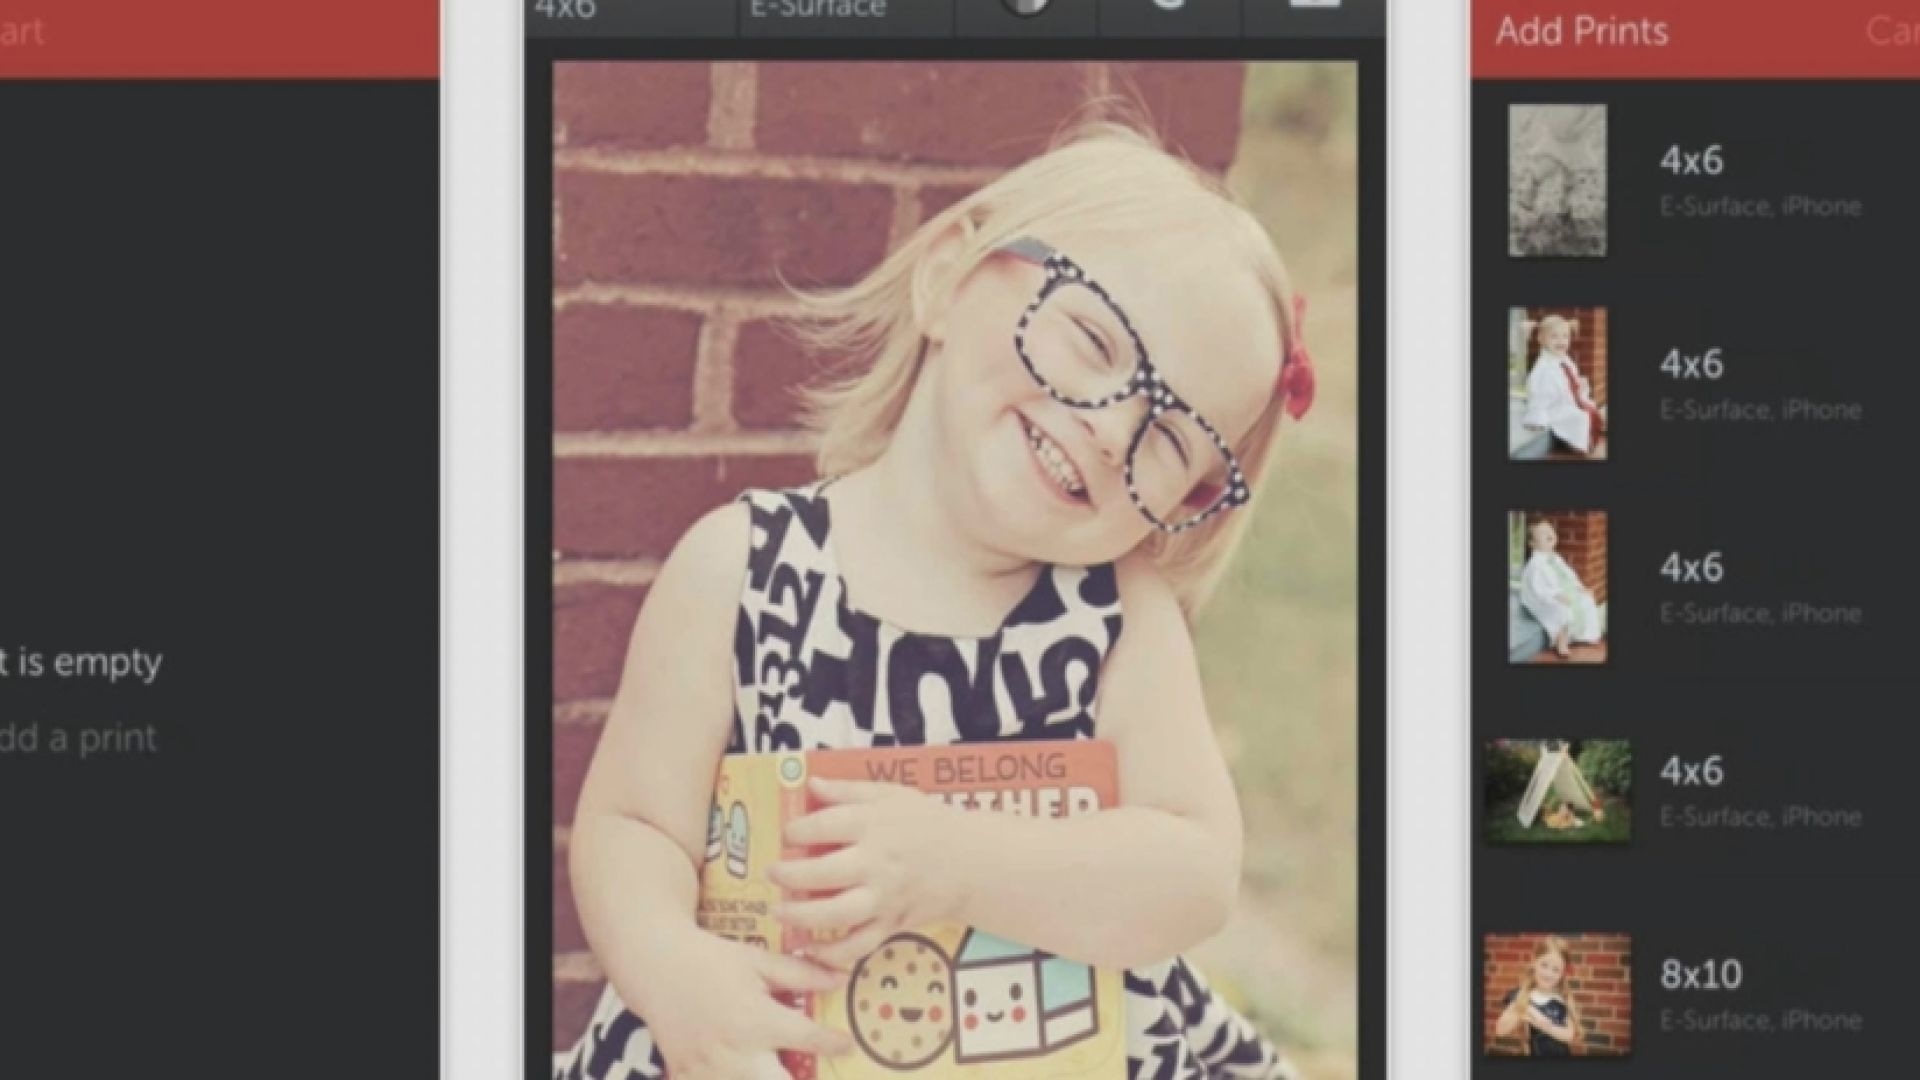 Print Photos From Your Phone With These Apps